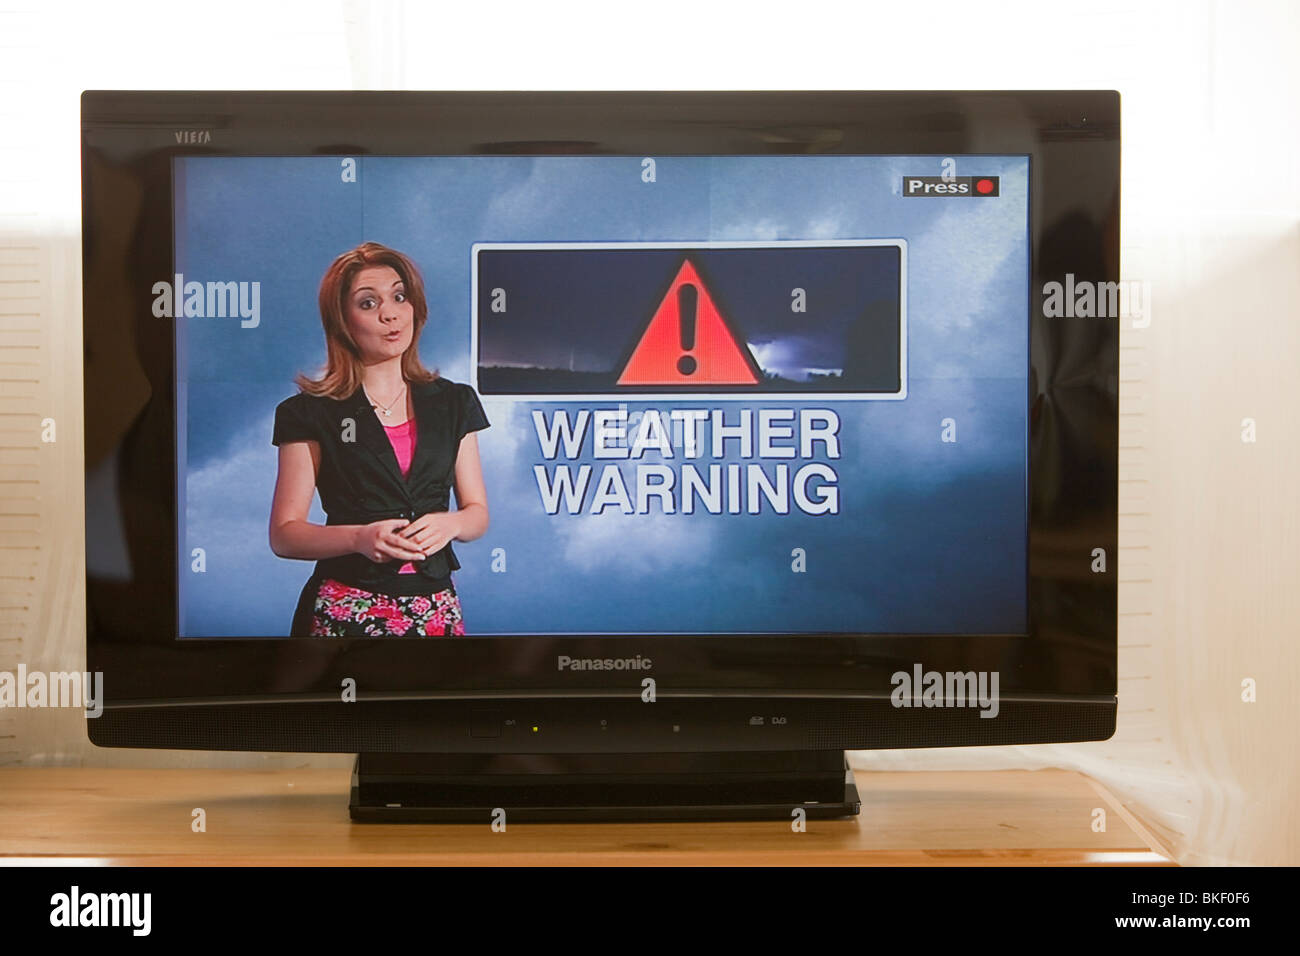 A TV weather forecast, forecasting a heat wave in the UK. - Stock Image